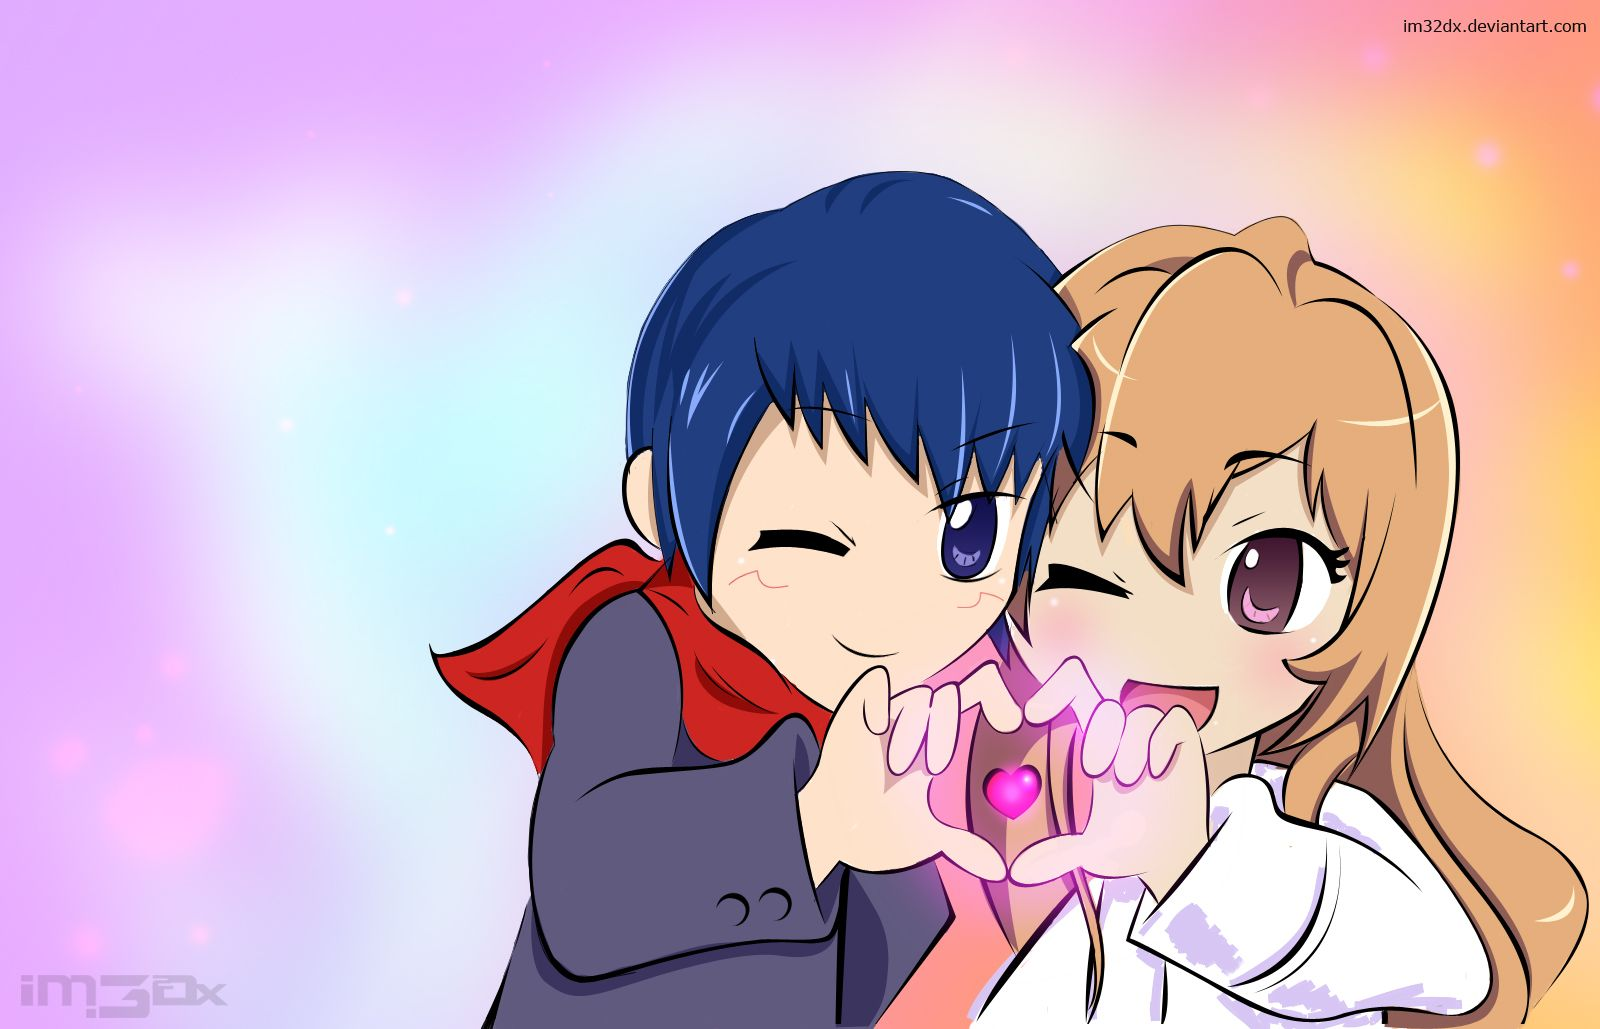 Day 72 - I wish I'd done everything on earth with you.... Ryuuji x Taiga chibi